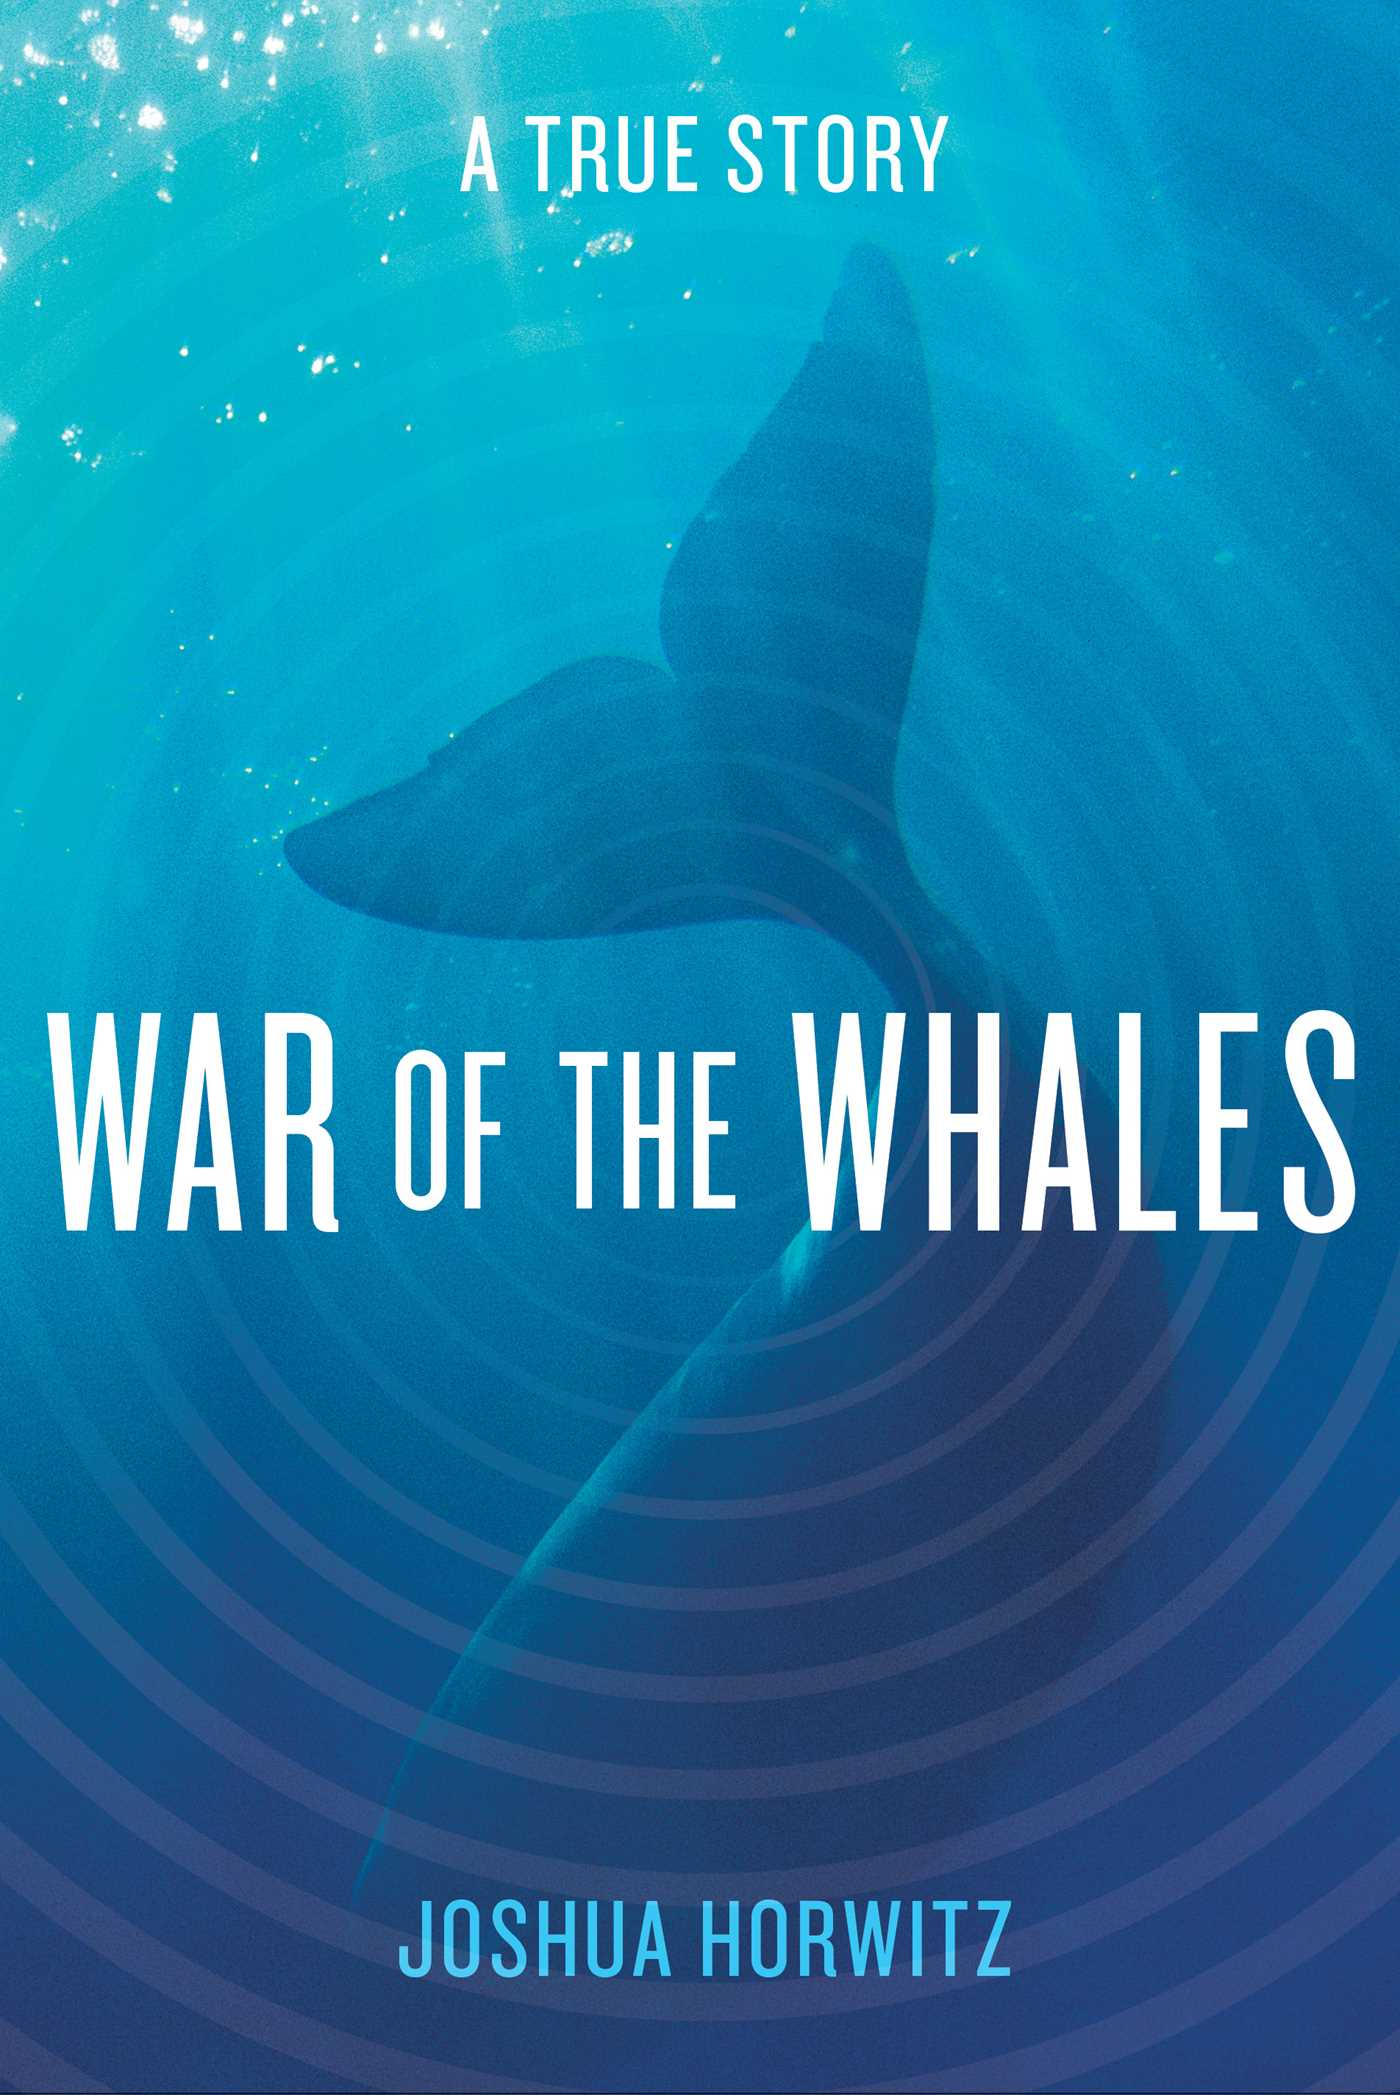 War-of-the-whales-9781451645019_hr